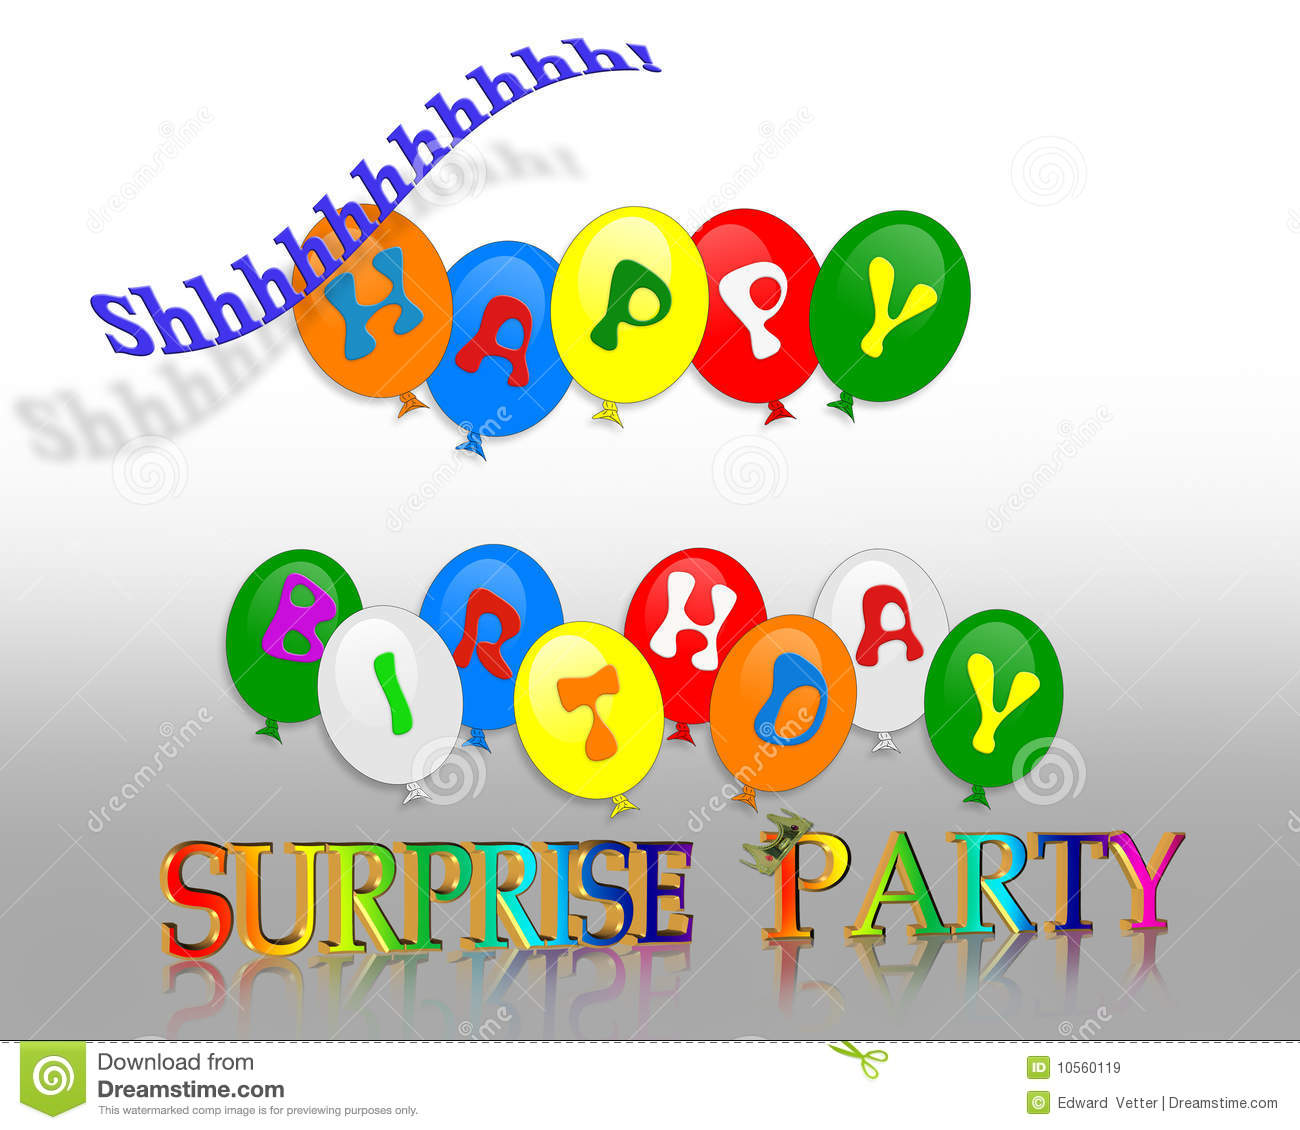 Birthday Surprise Party Invitation Royalty Free Stock Images  Image